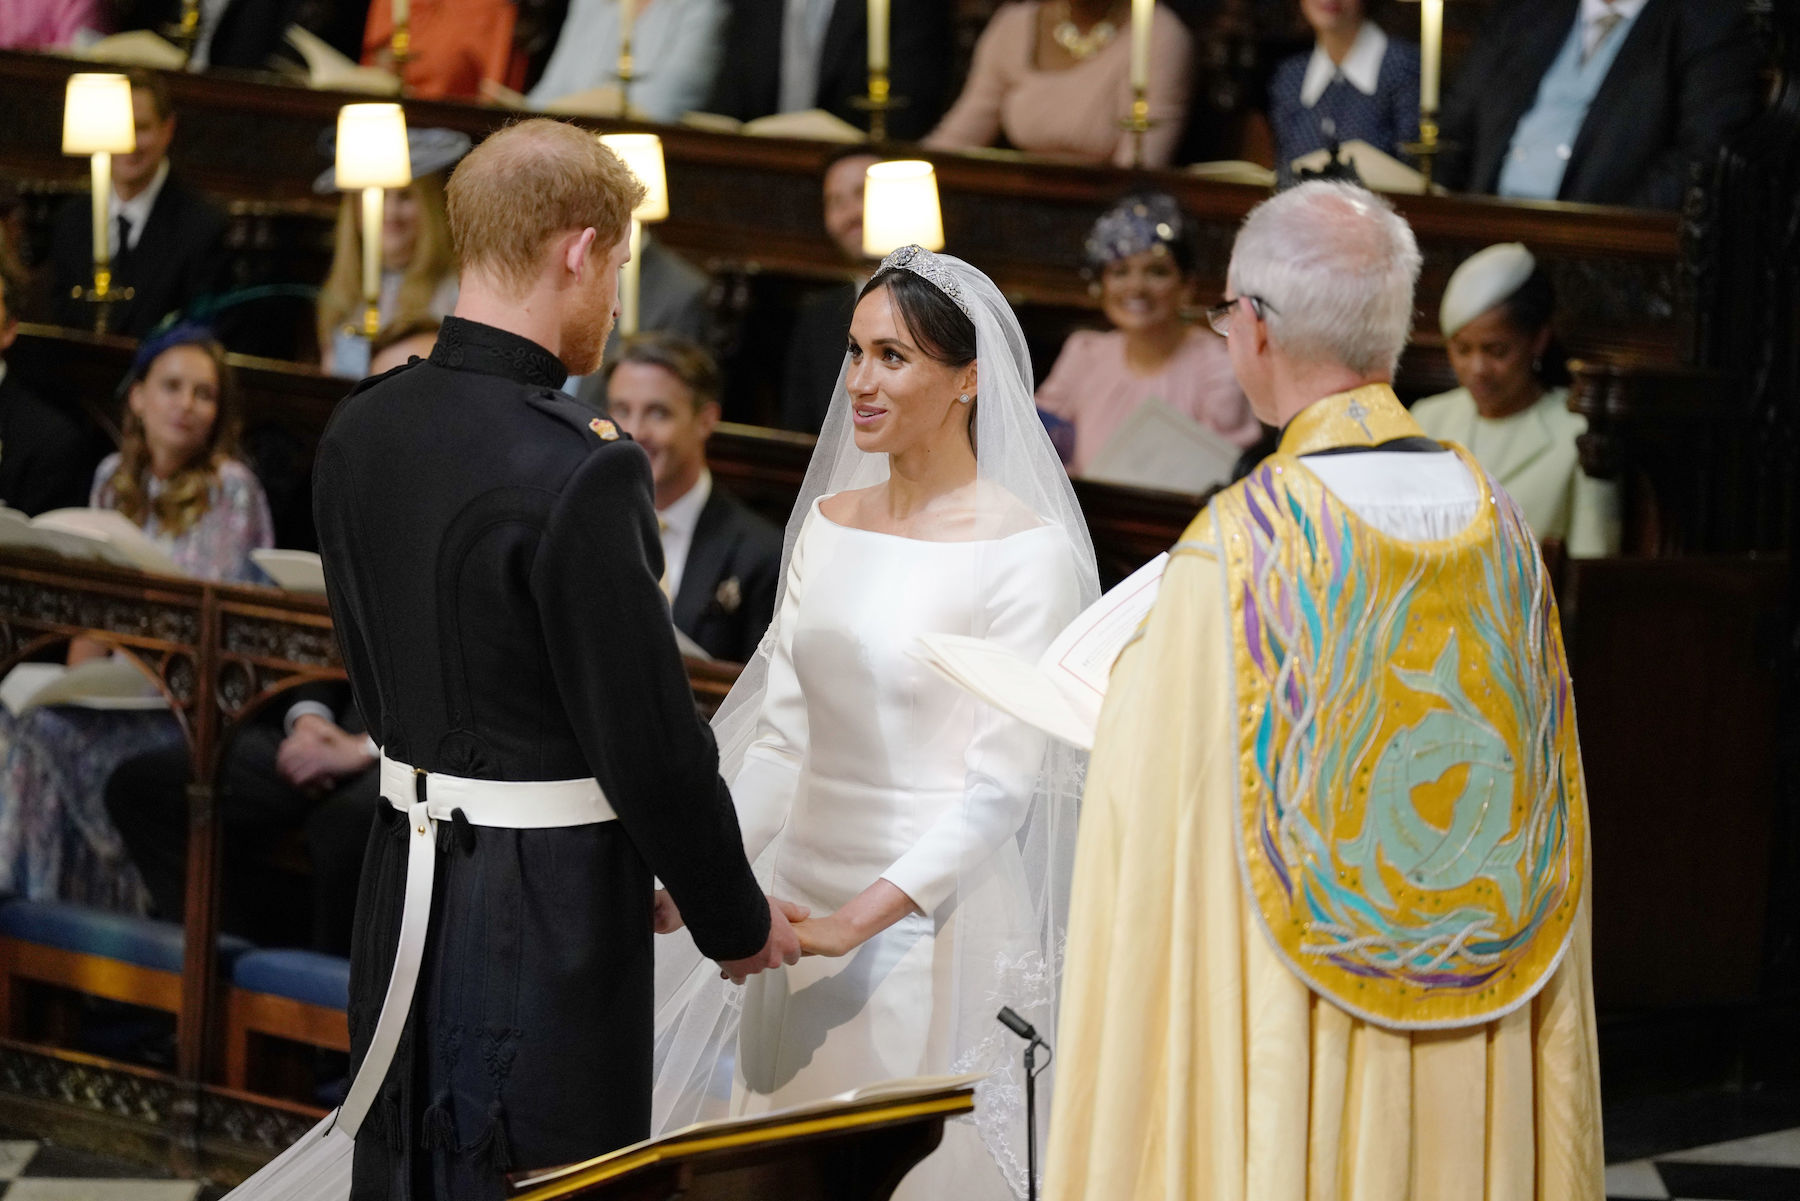 <div class='meta'><div class='origin-logo' data-origin='Creative Content'></div><span class='caption-text' data-credit='Dominic Lipinsky/AFP/Getty Images'>Britain's Prince Harry, Duke of Sussex, and US fiancee of Britain's Prince Harry Meghan Markle during their wedding ceremony in St George's Chapel.</span></div>